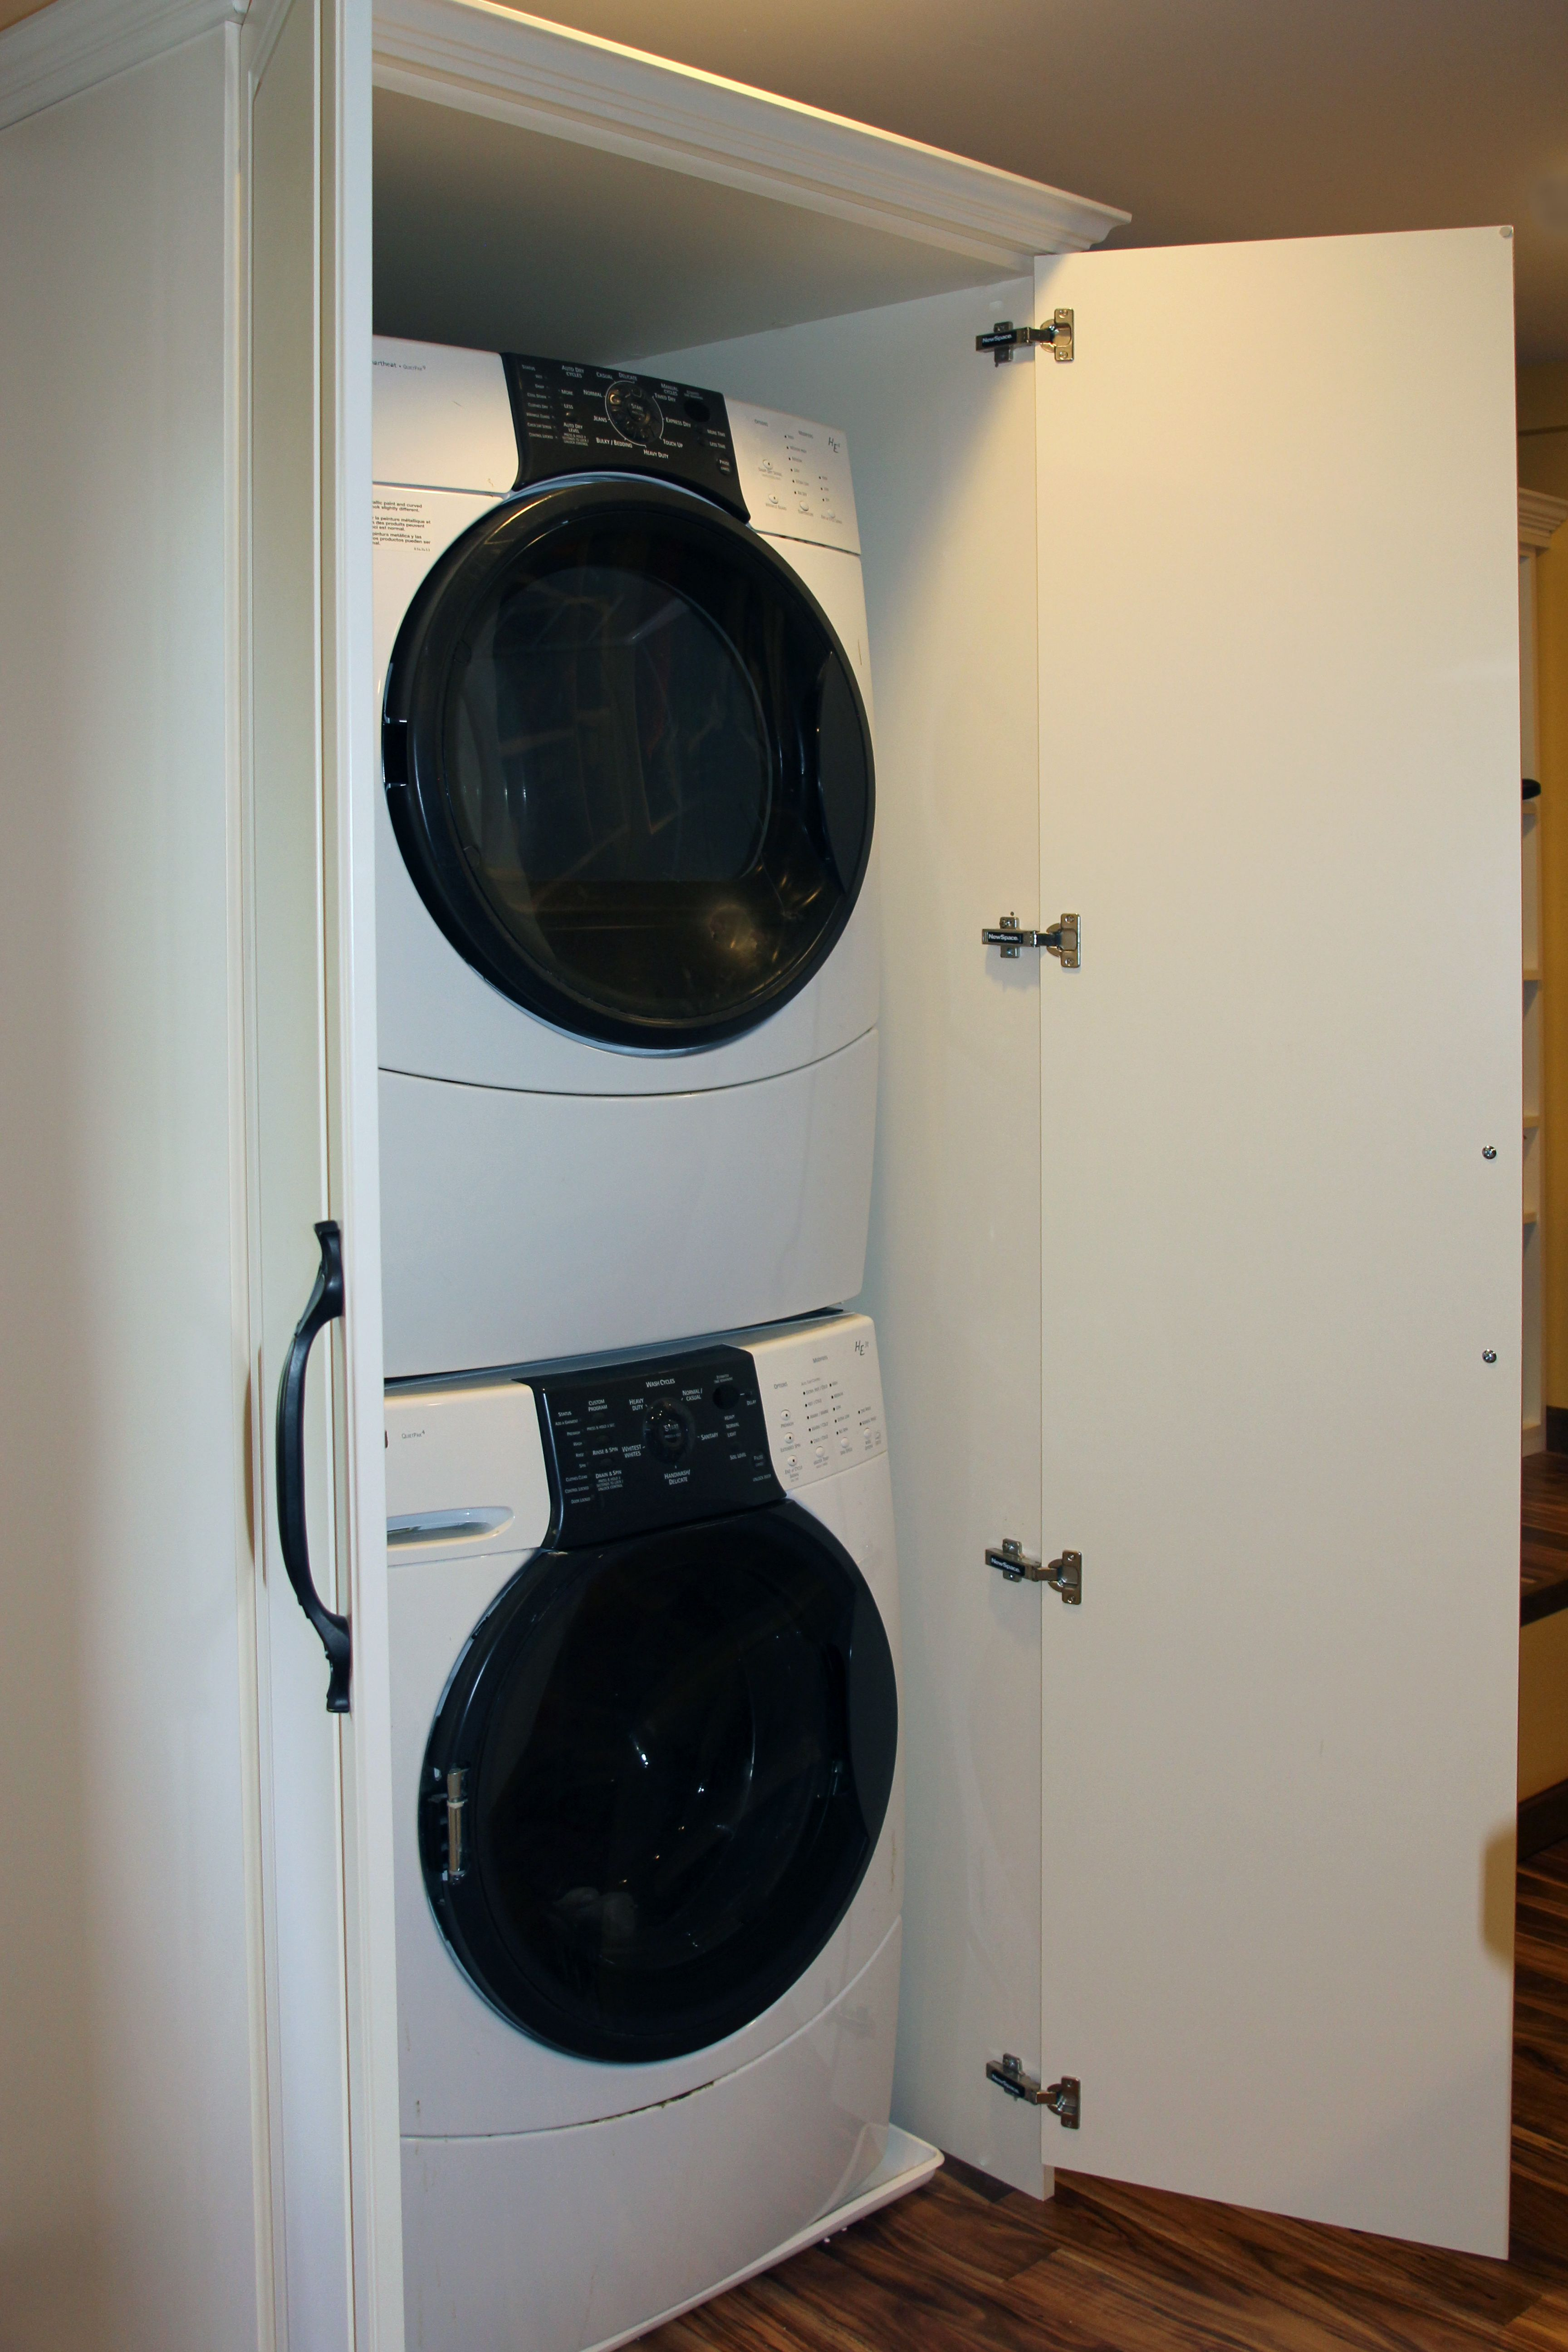 Make Doing Laundry Easy By Having A Washer/dryer Installed In Your Closet!